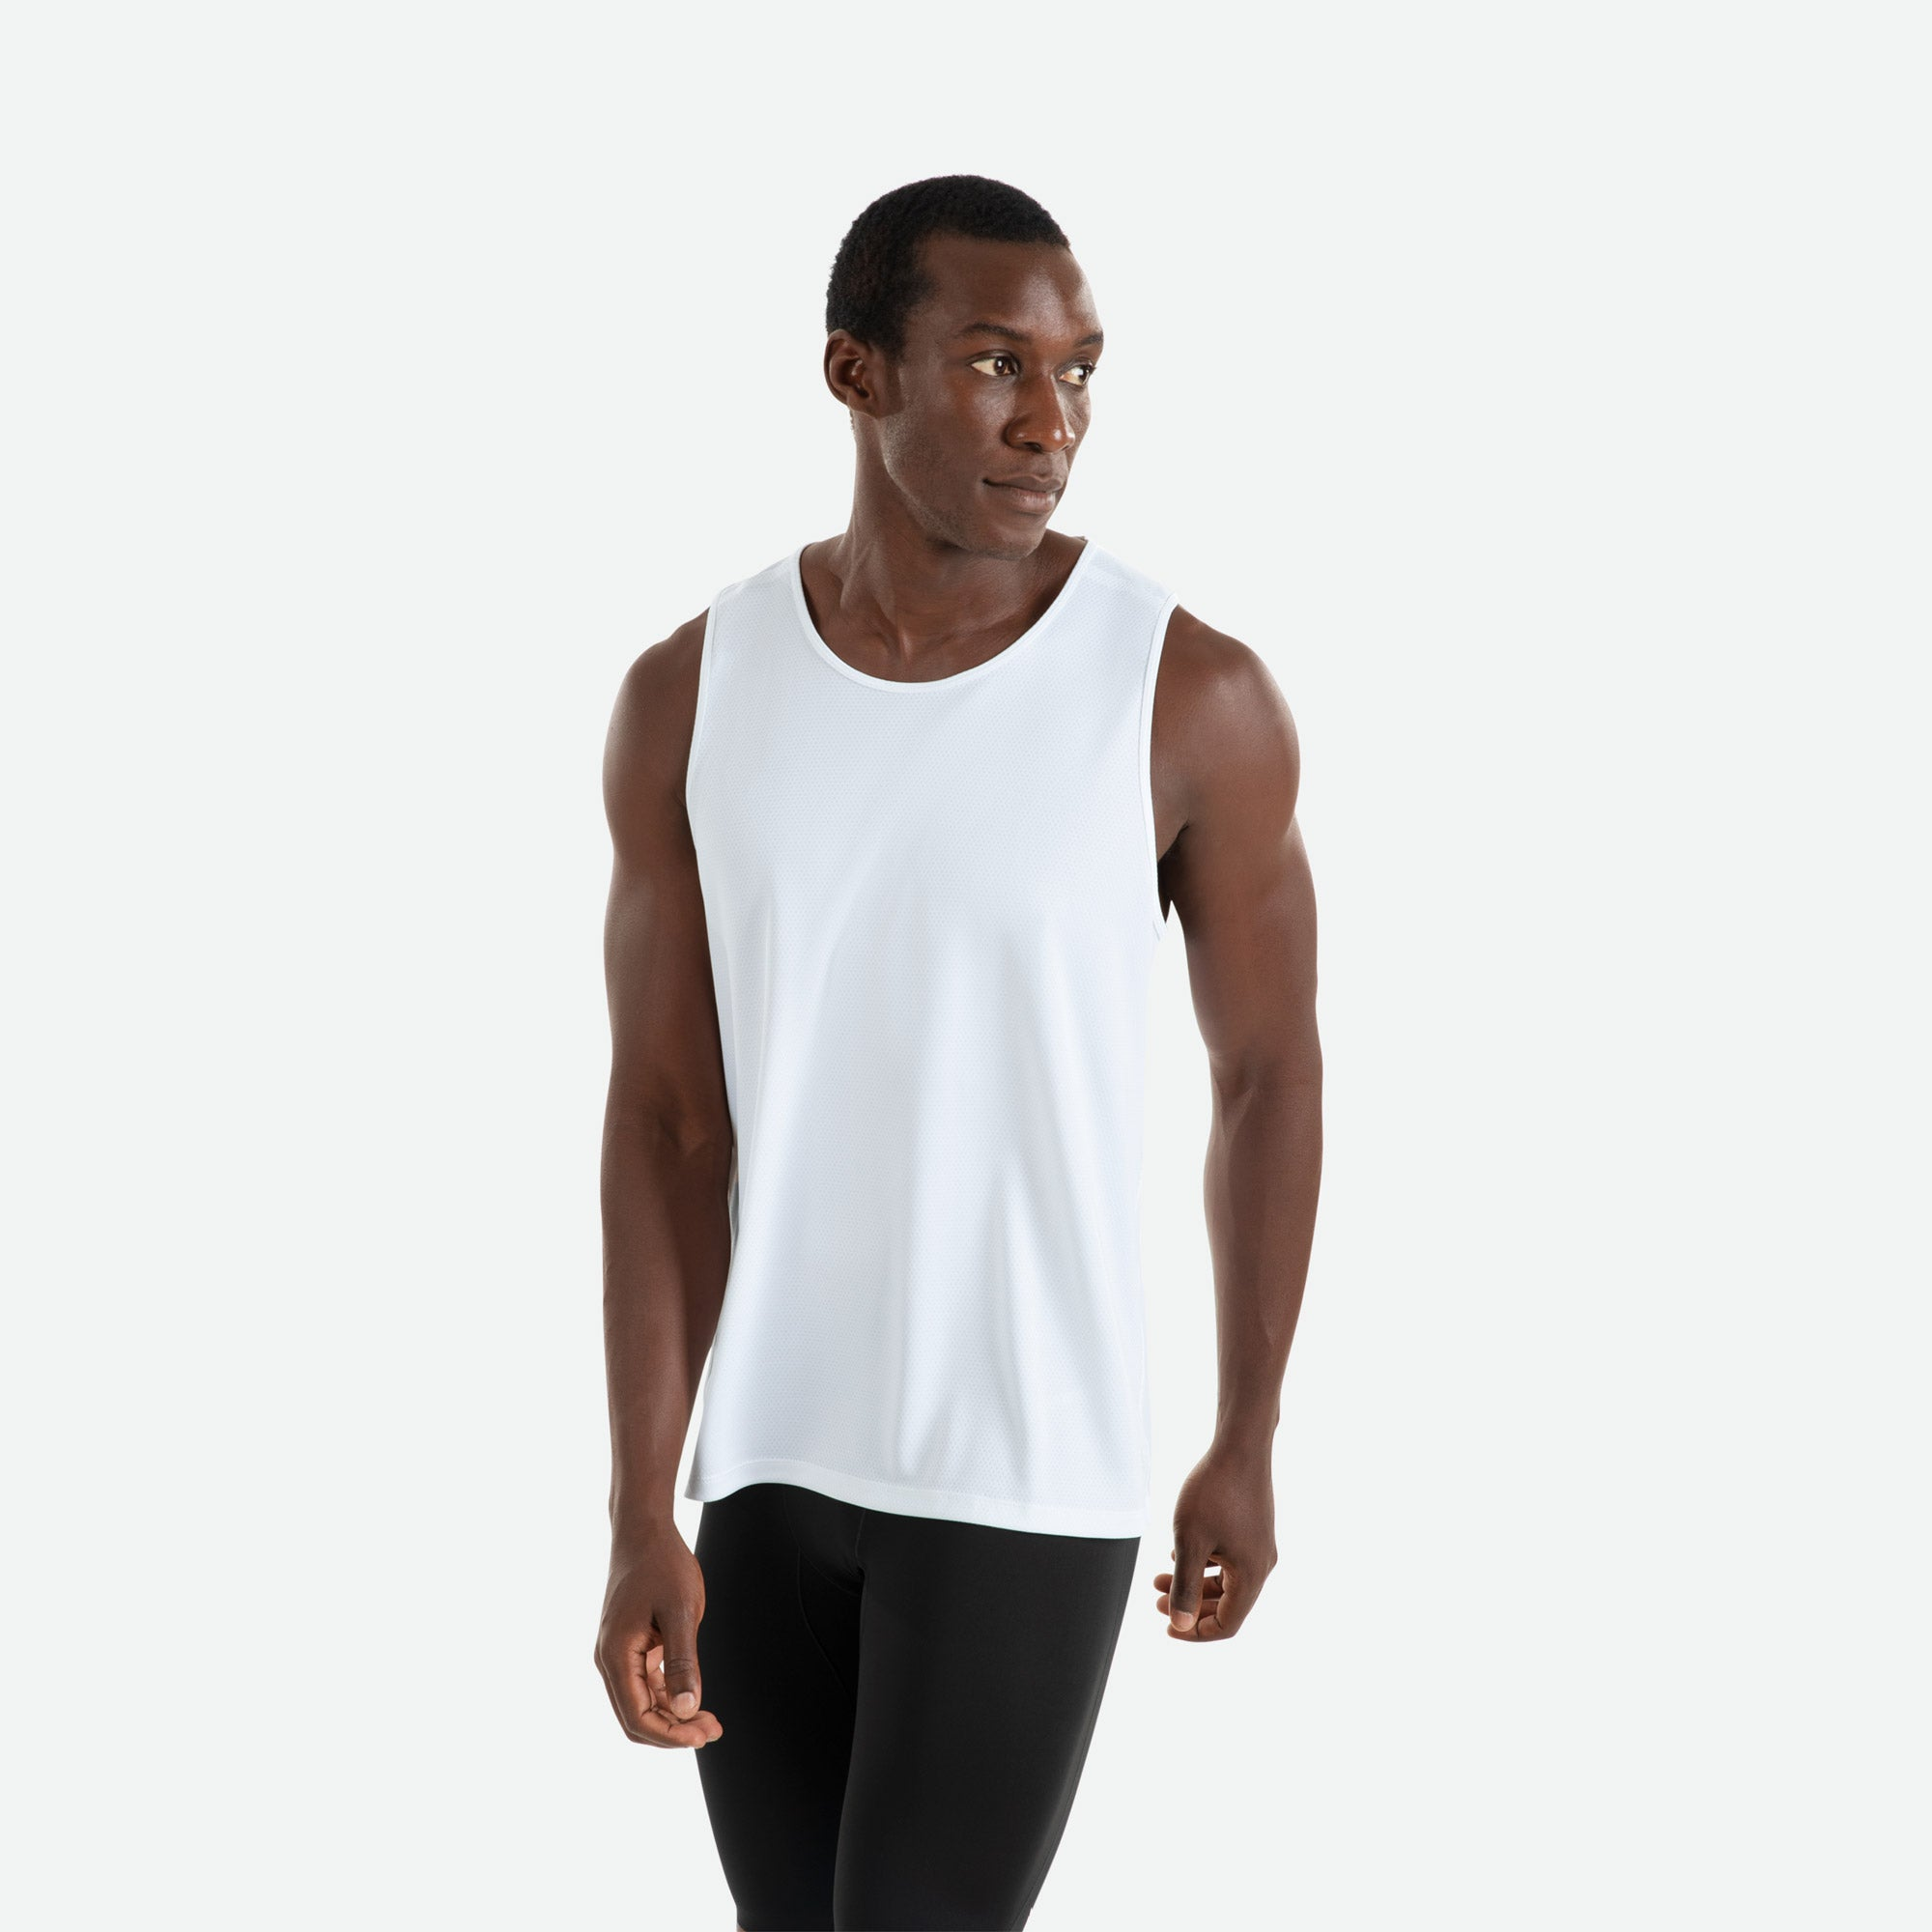 Our Pressio men's white Hāpai singlet features EcoTECH MF fabric which has dual filament recycled polyester yarns from Unifi for superior moisture control to keep you dry.